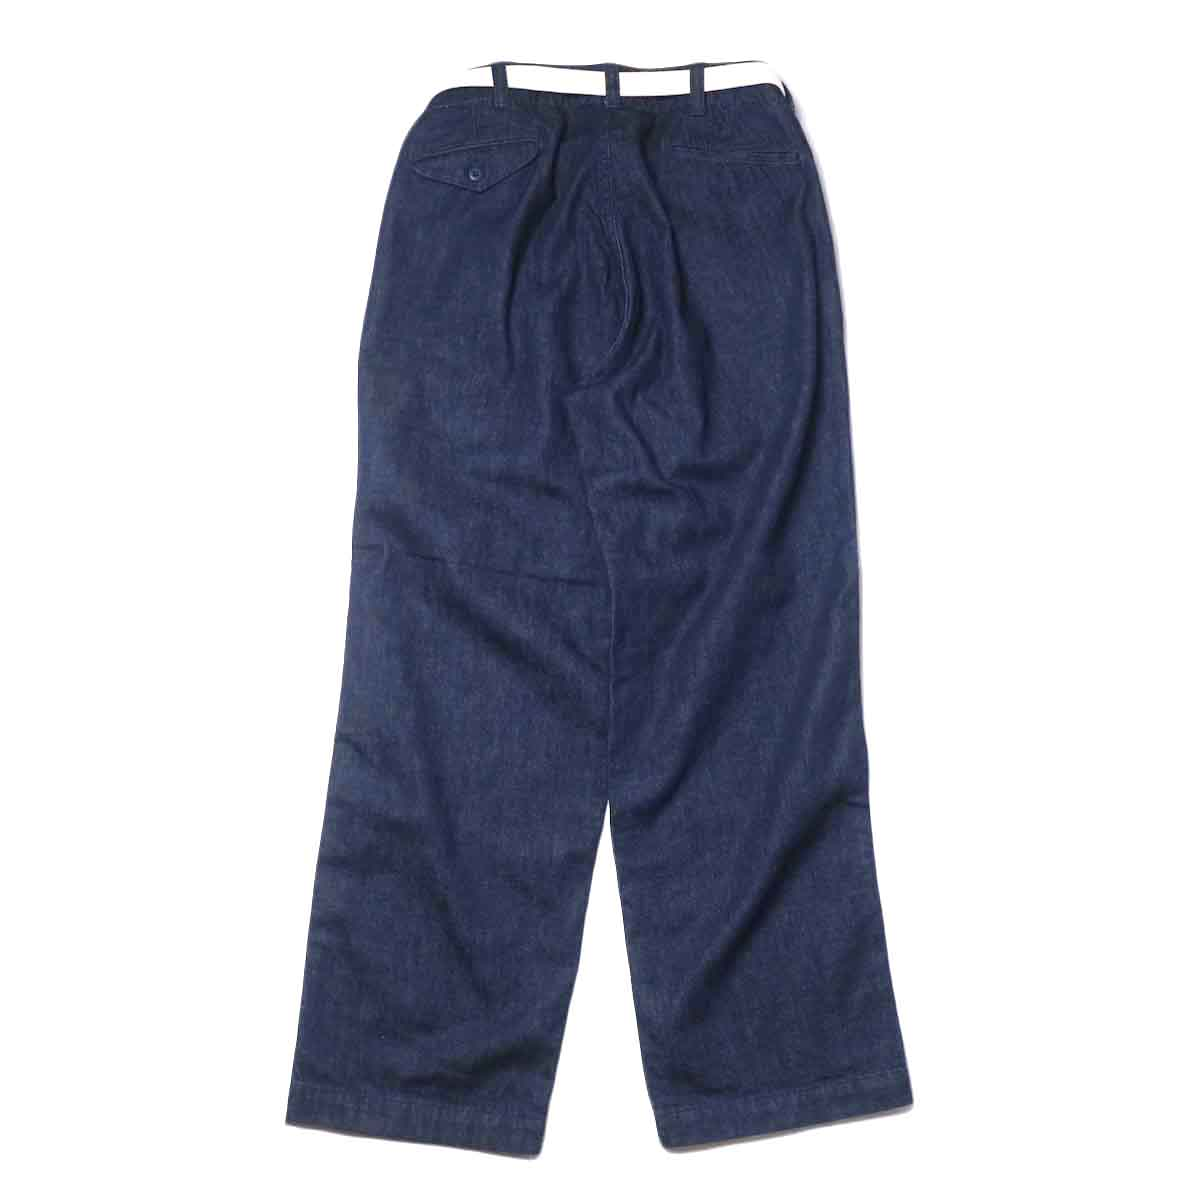 MASTER&Co. / ONE WASHED DENIM LONG PANTS 背面